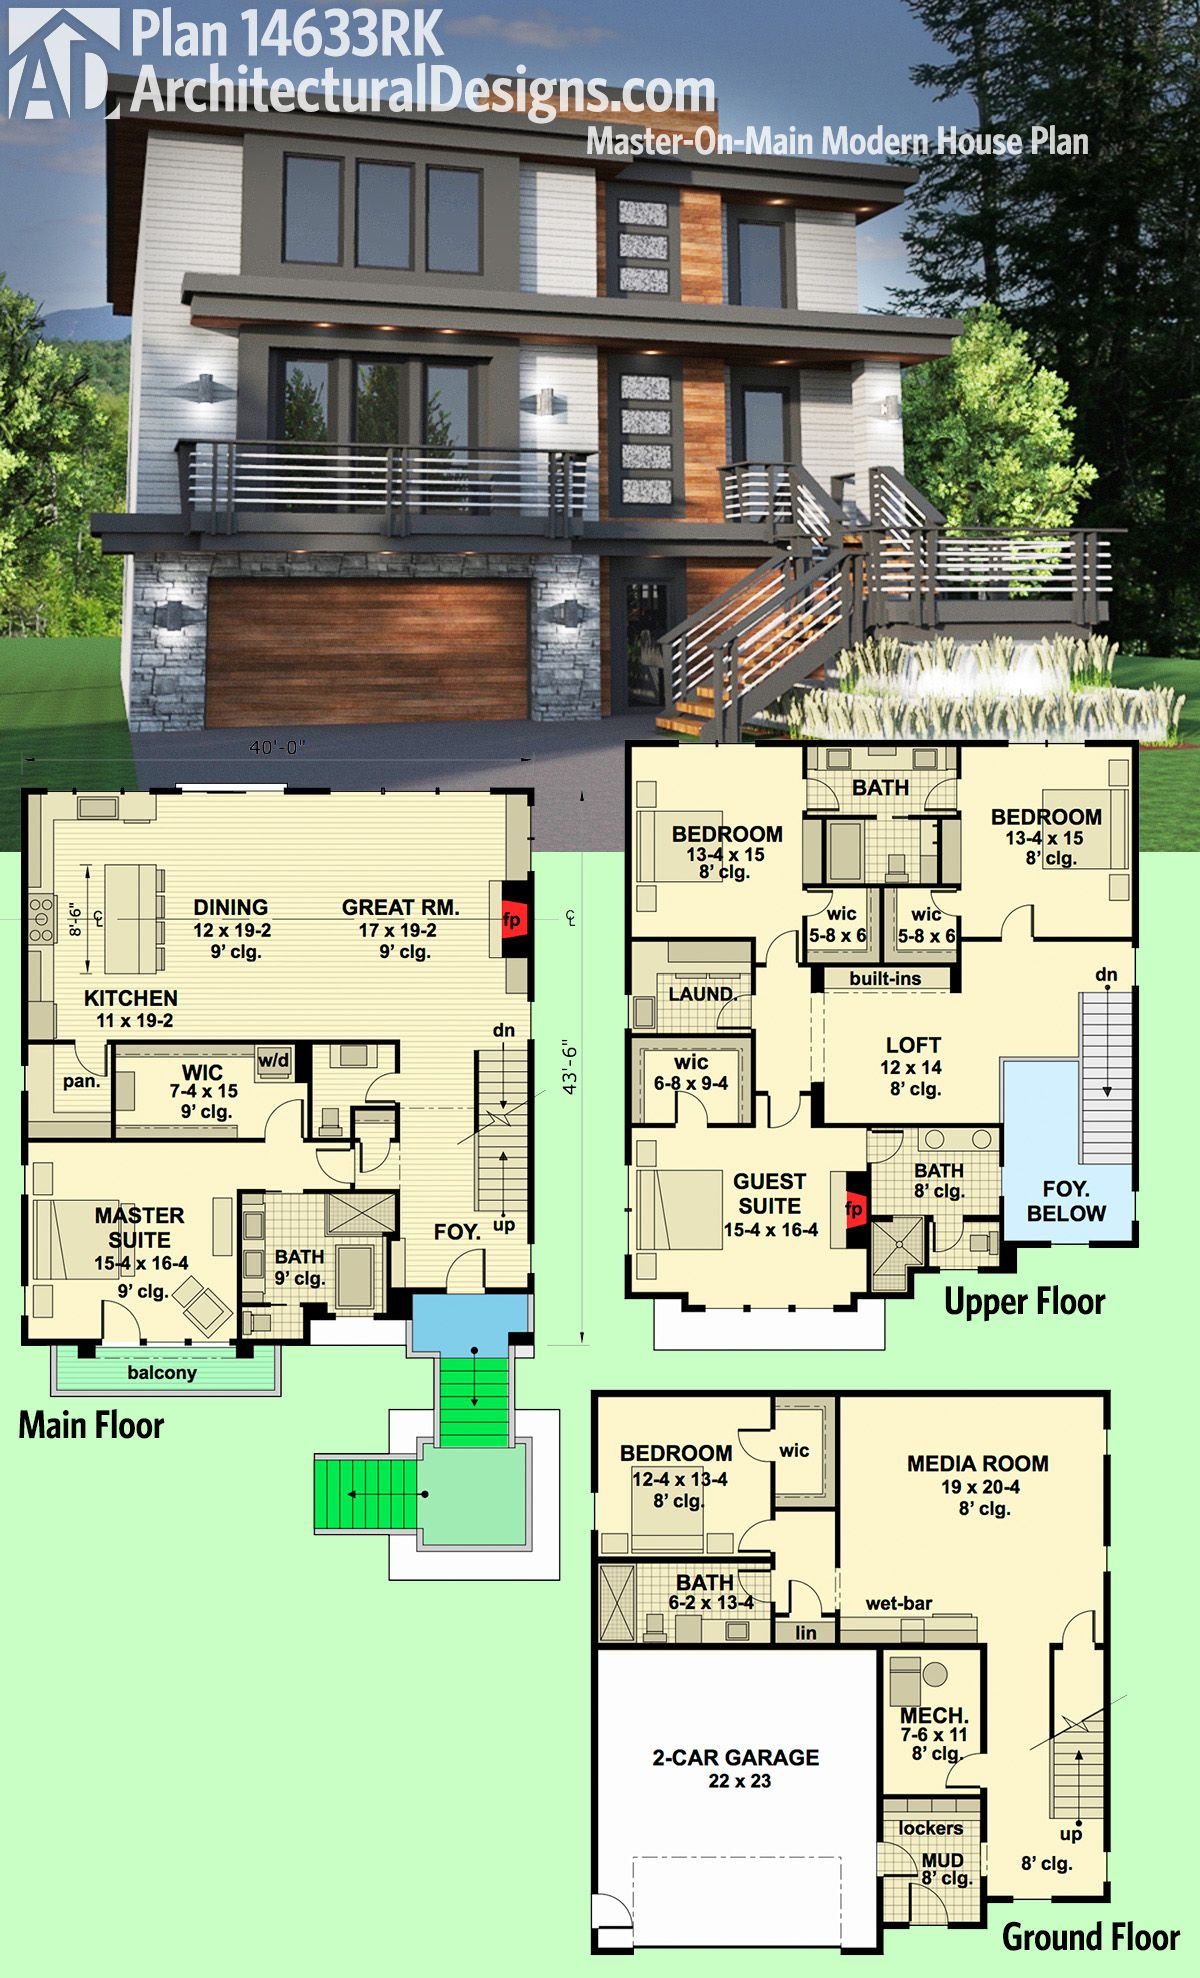 Plan 14633rk master on main modern house plan modern for Modern mansion blueprints